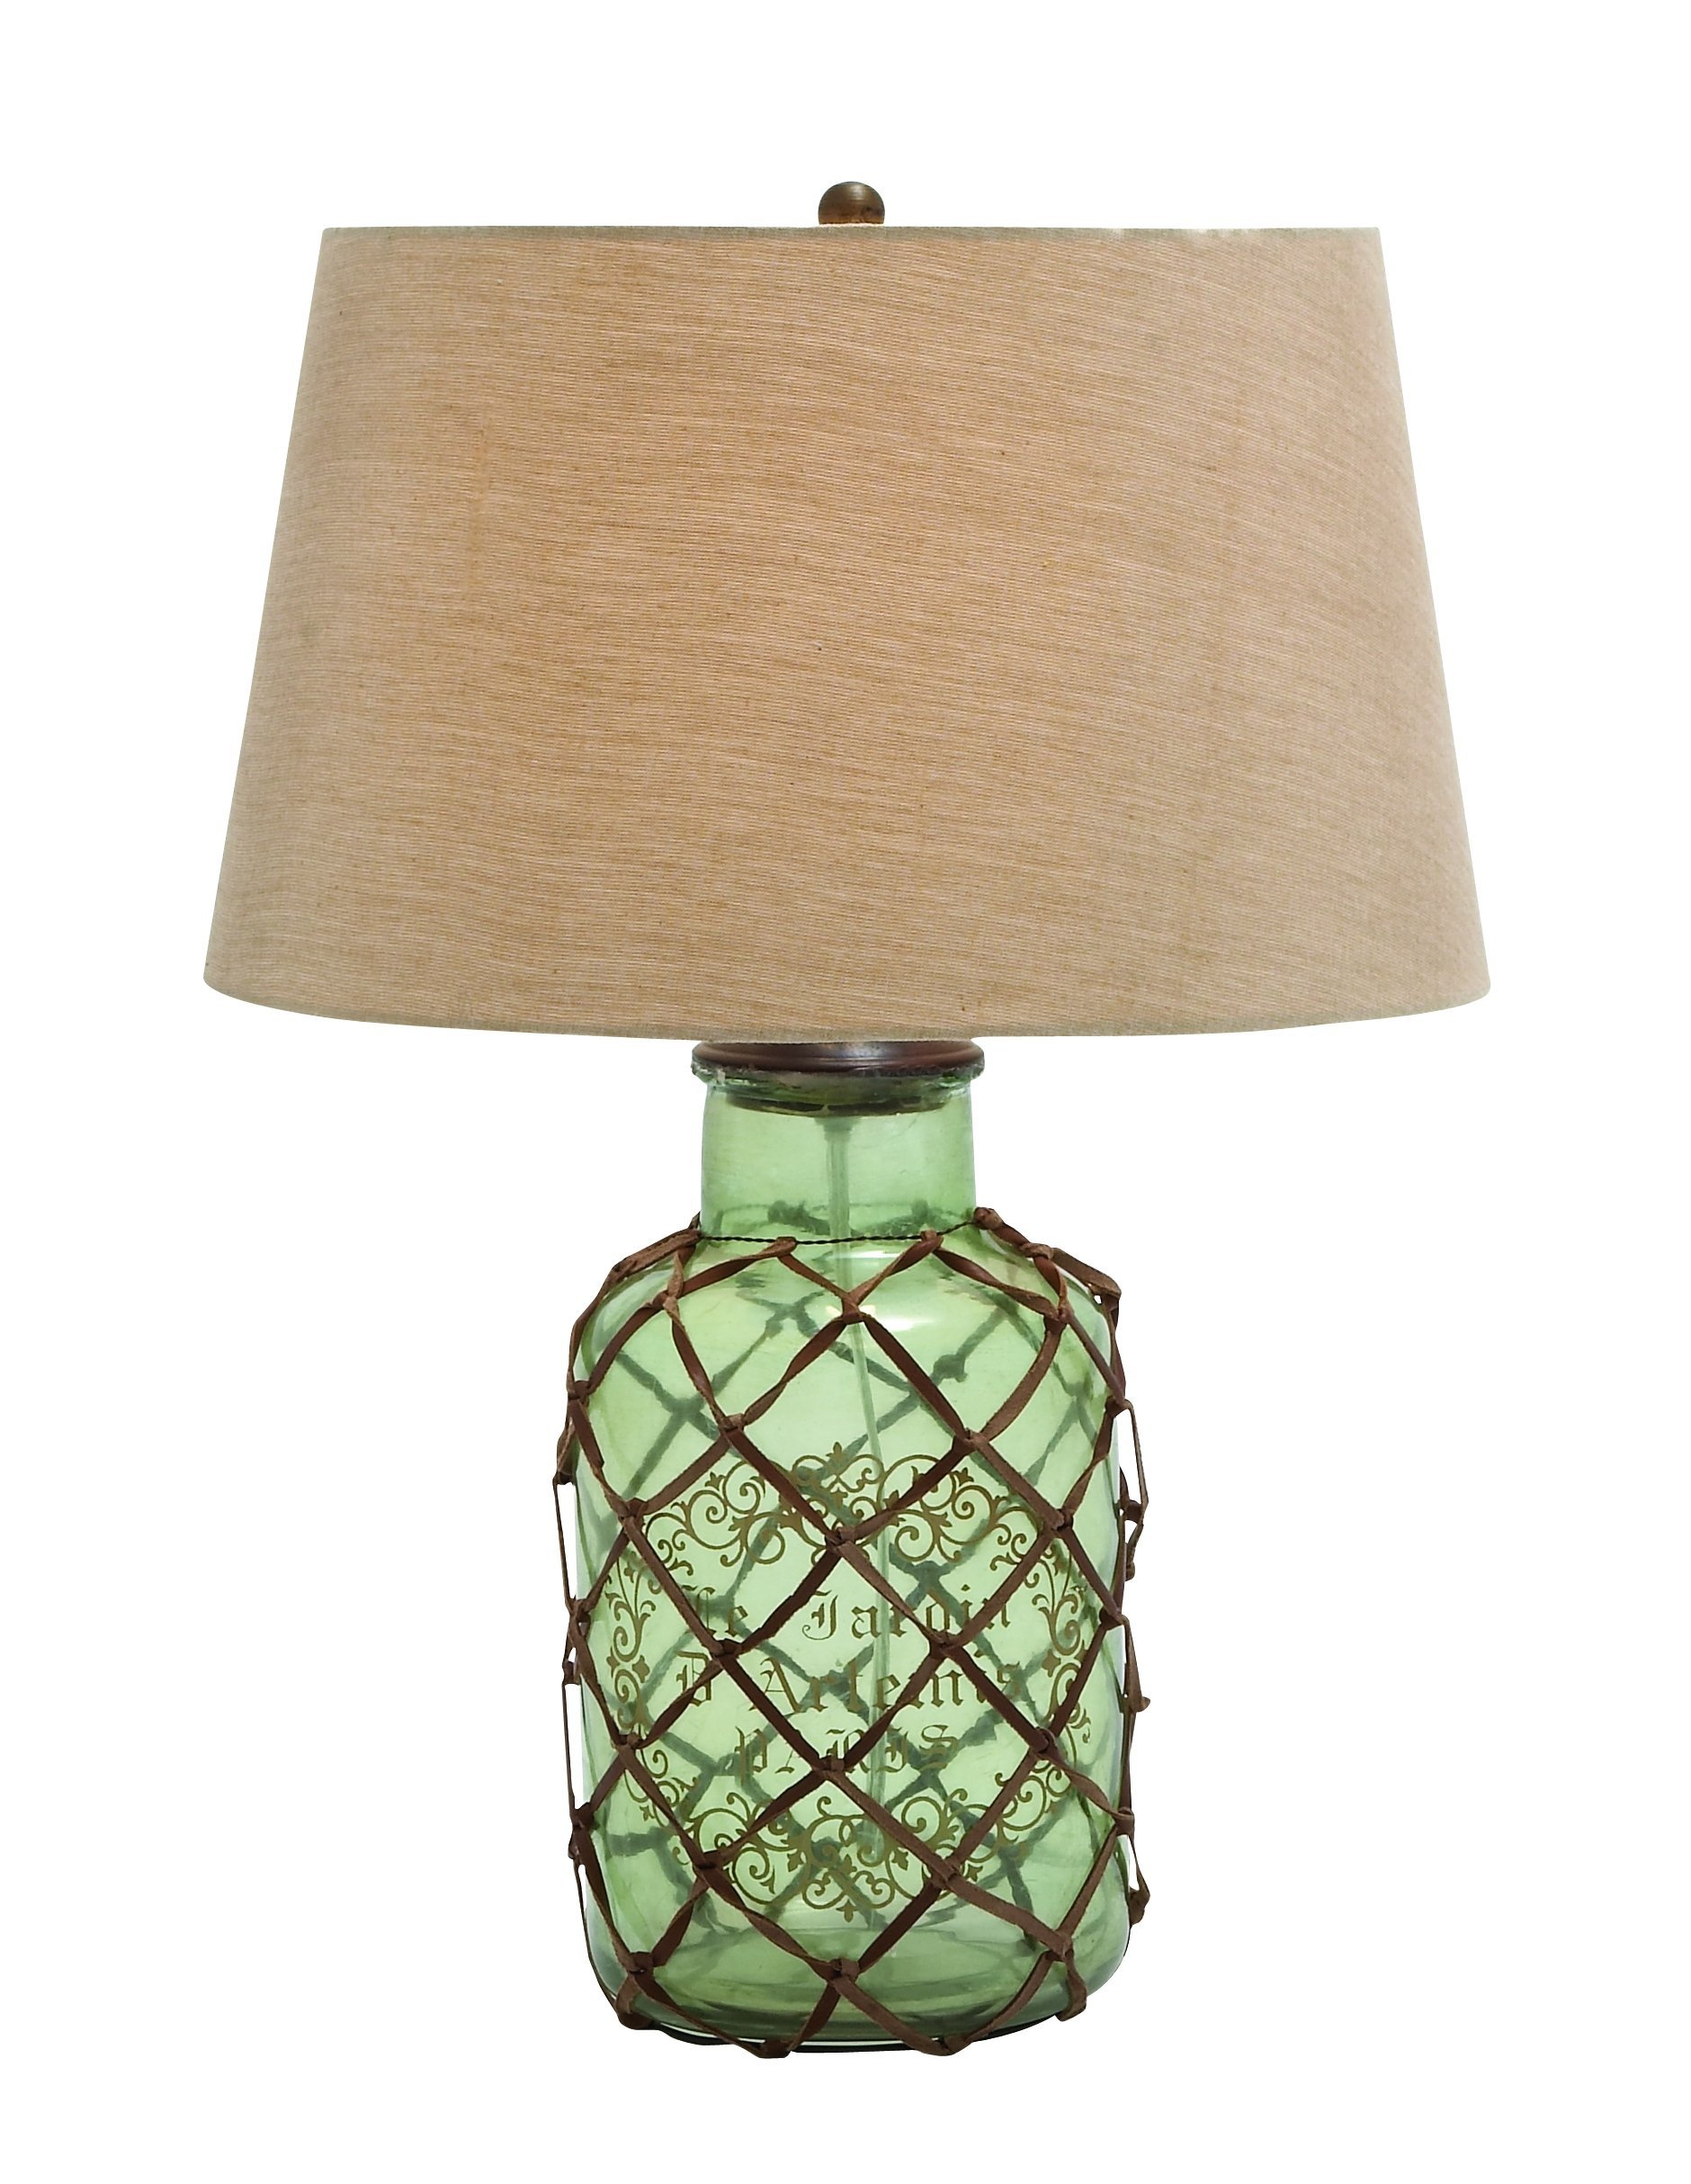 Benzara Translucent Glass Table Lamp with Netted Leather